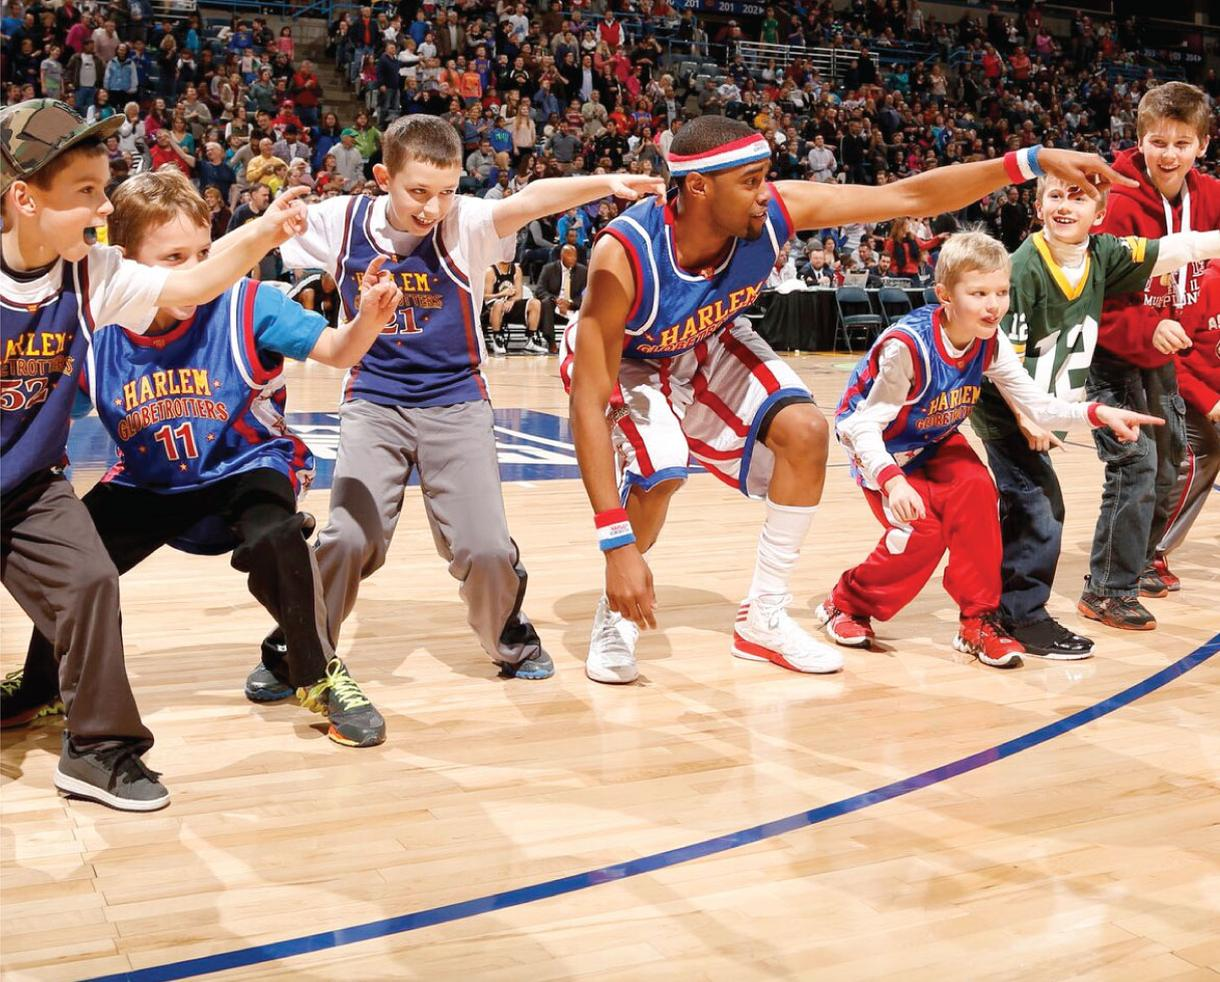 30% Off Harlem Globetrotters Tickets at Capital One Arena